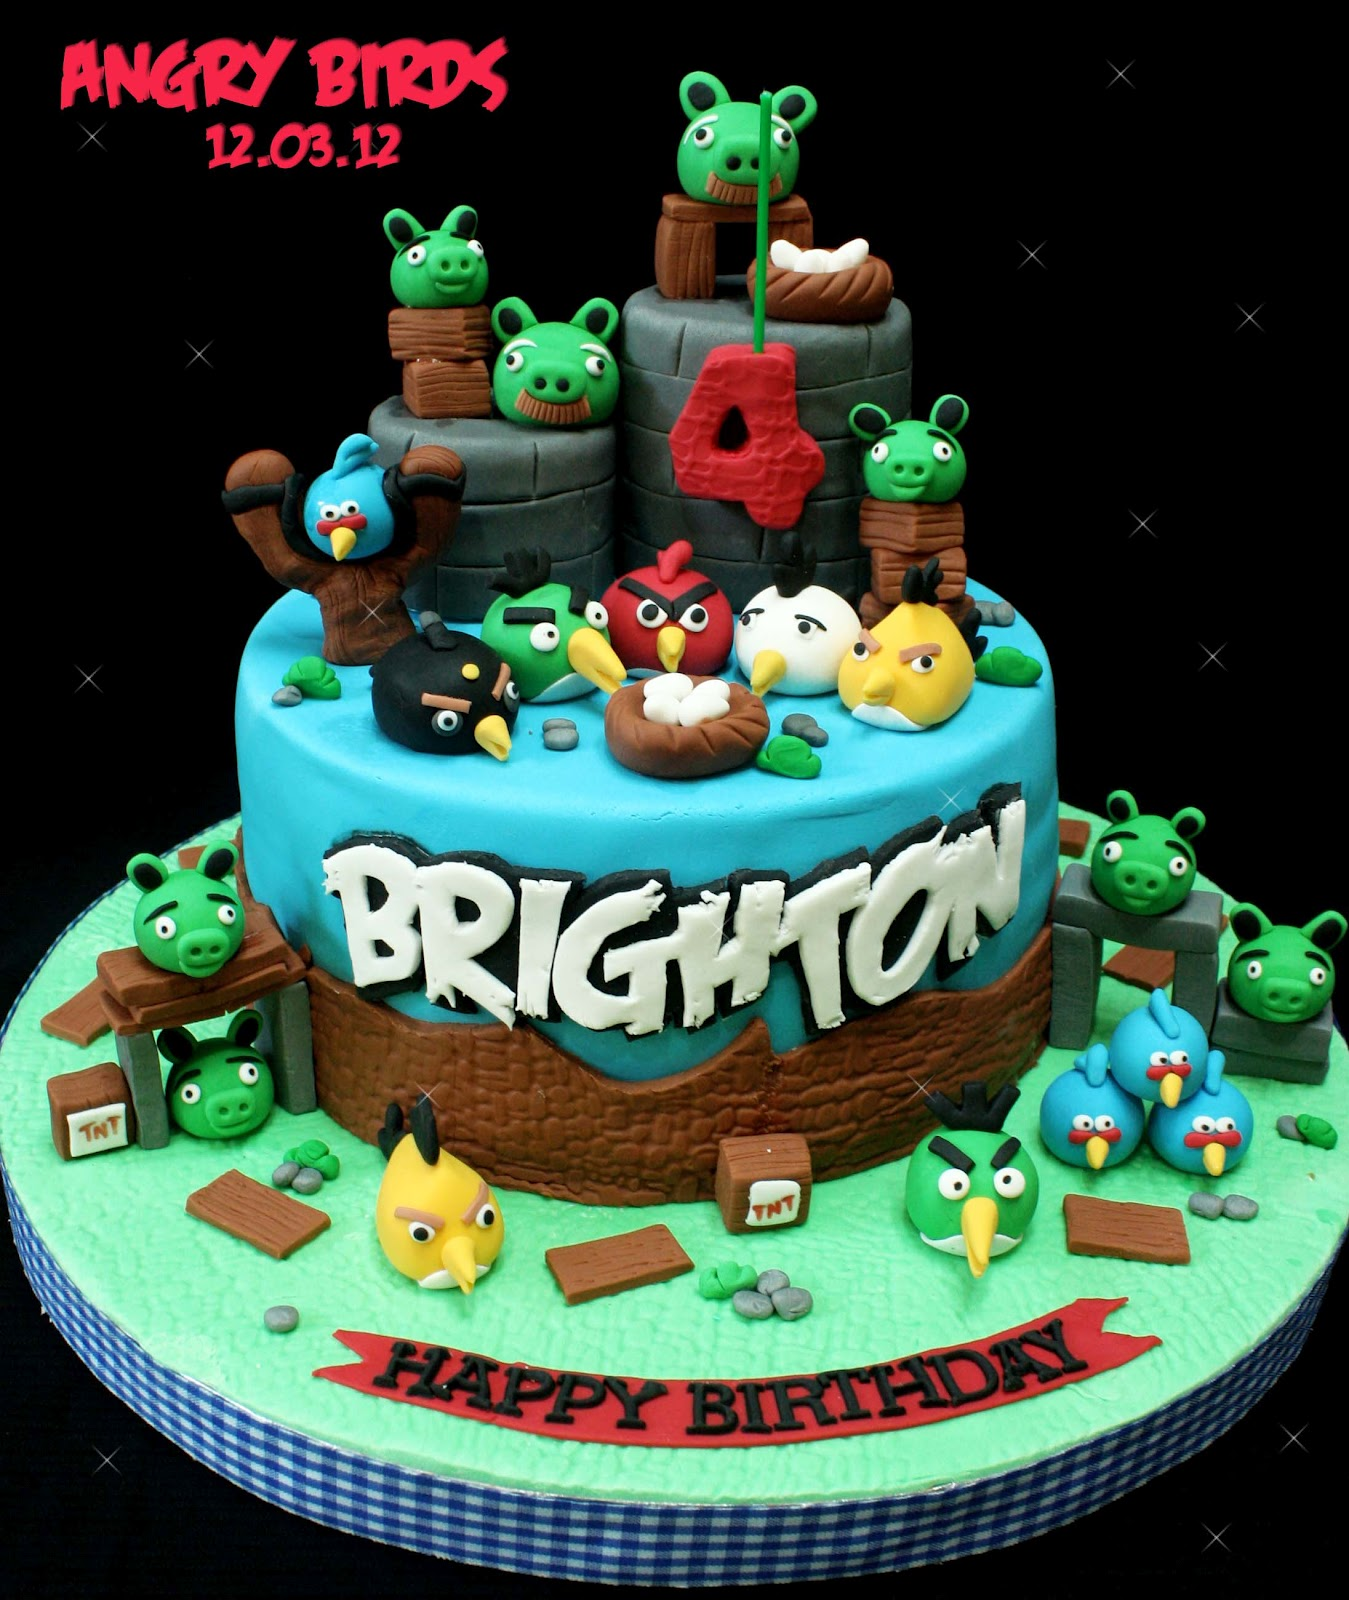 Angry Birds Cake Cake Ideas And Designs